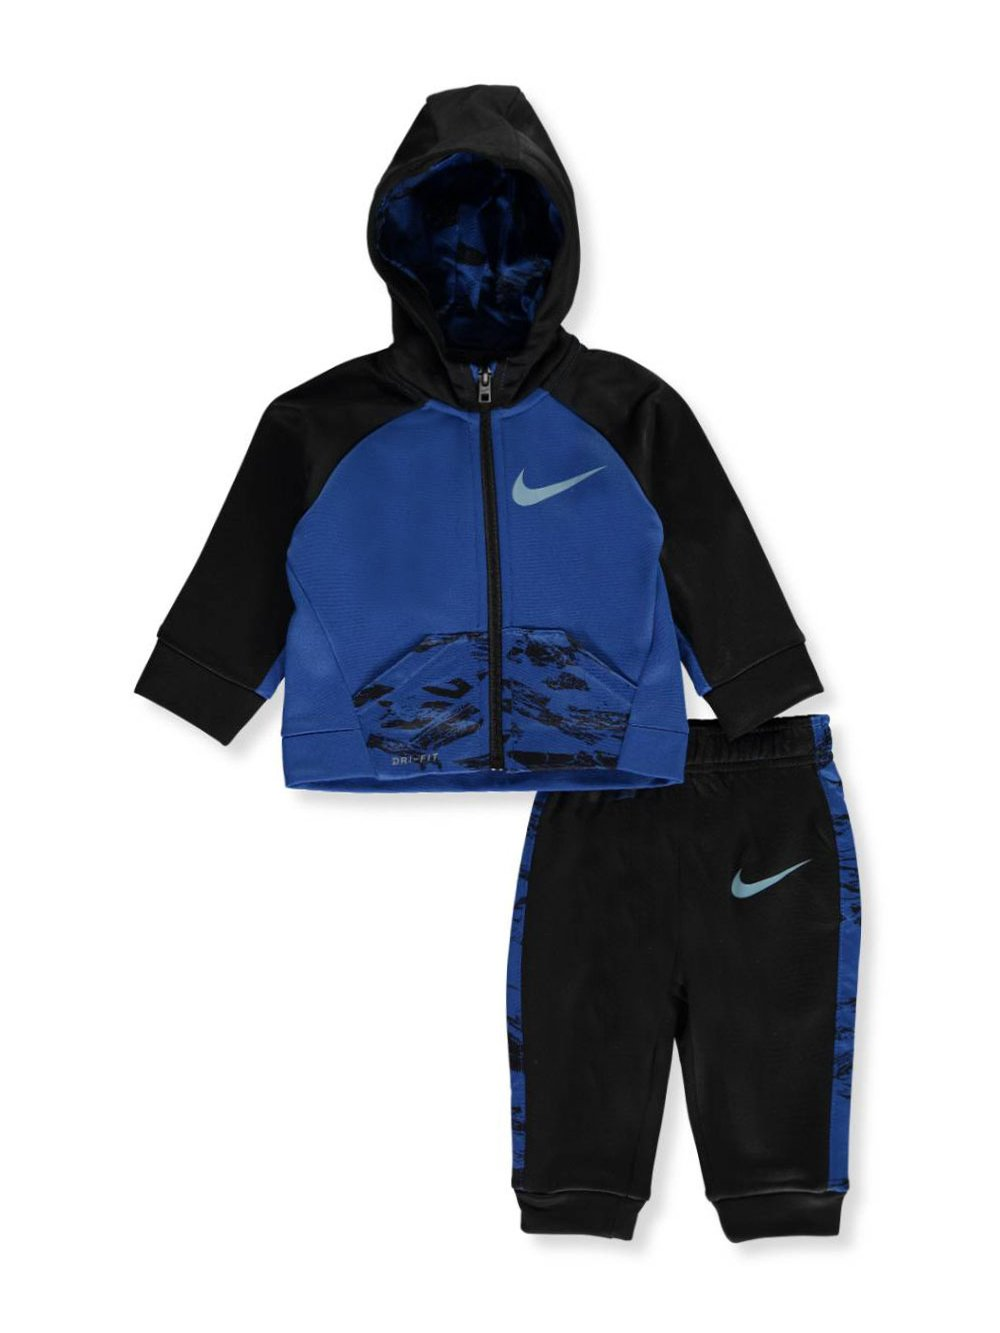 NIKE Baby Boys' Therma Dri-Fit 2-Piece Tracksuit - Blue Jay, 6-9 Months